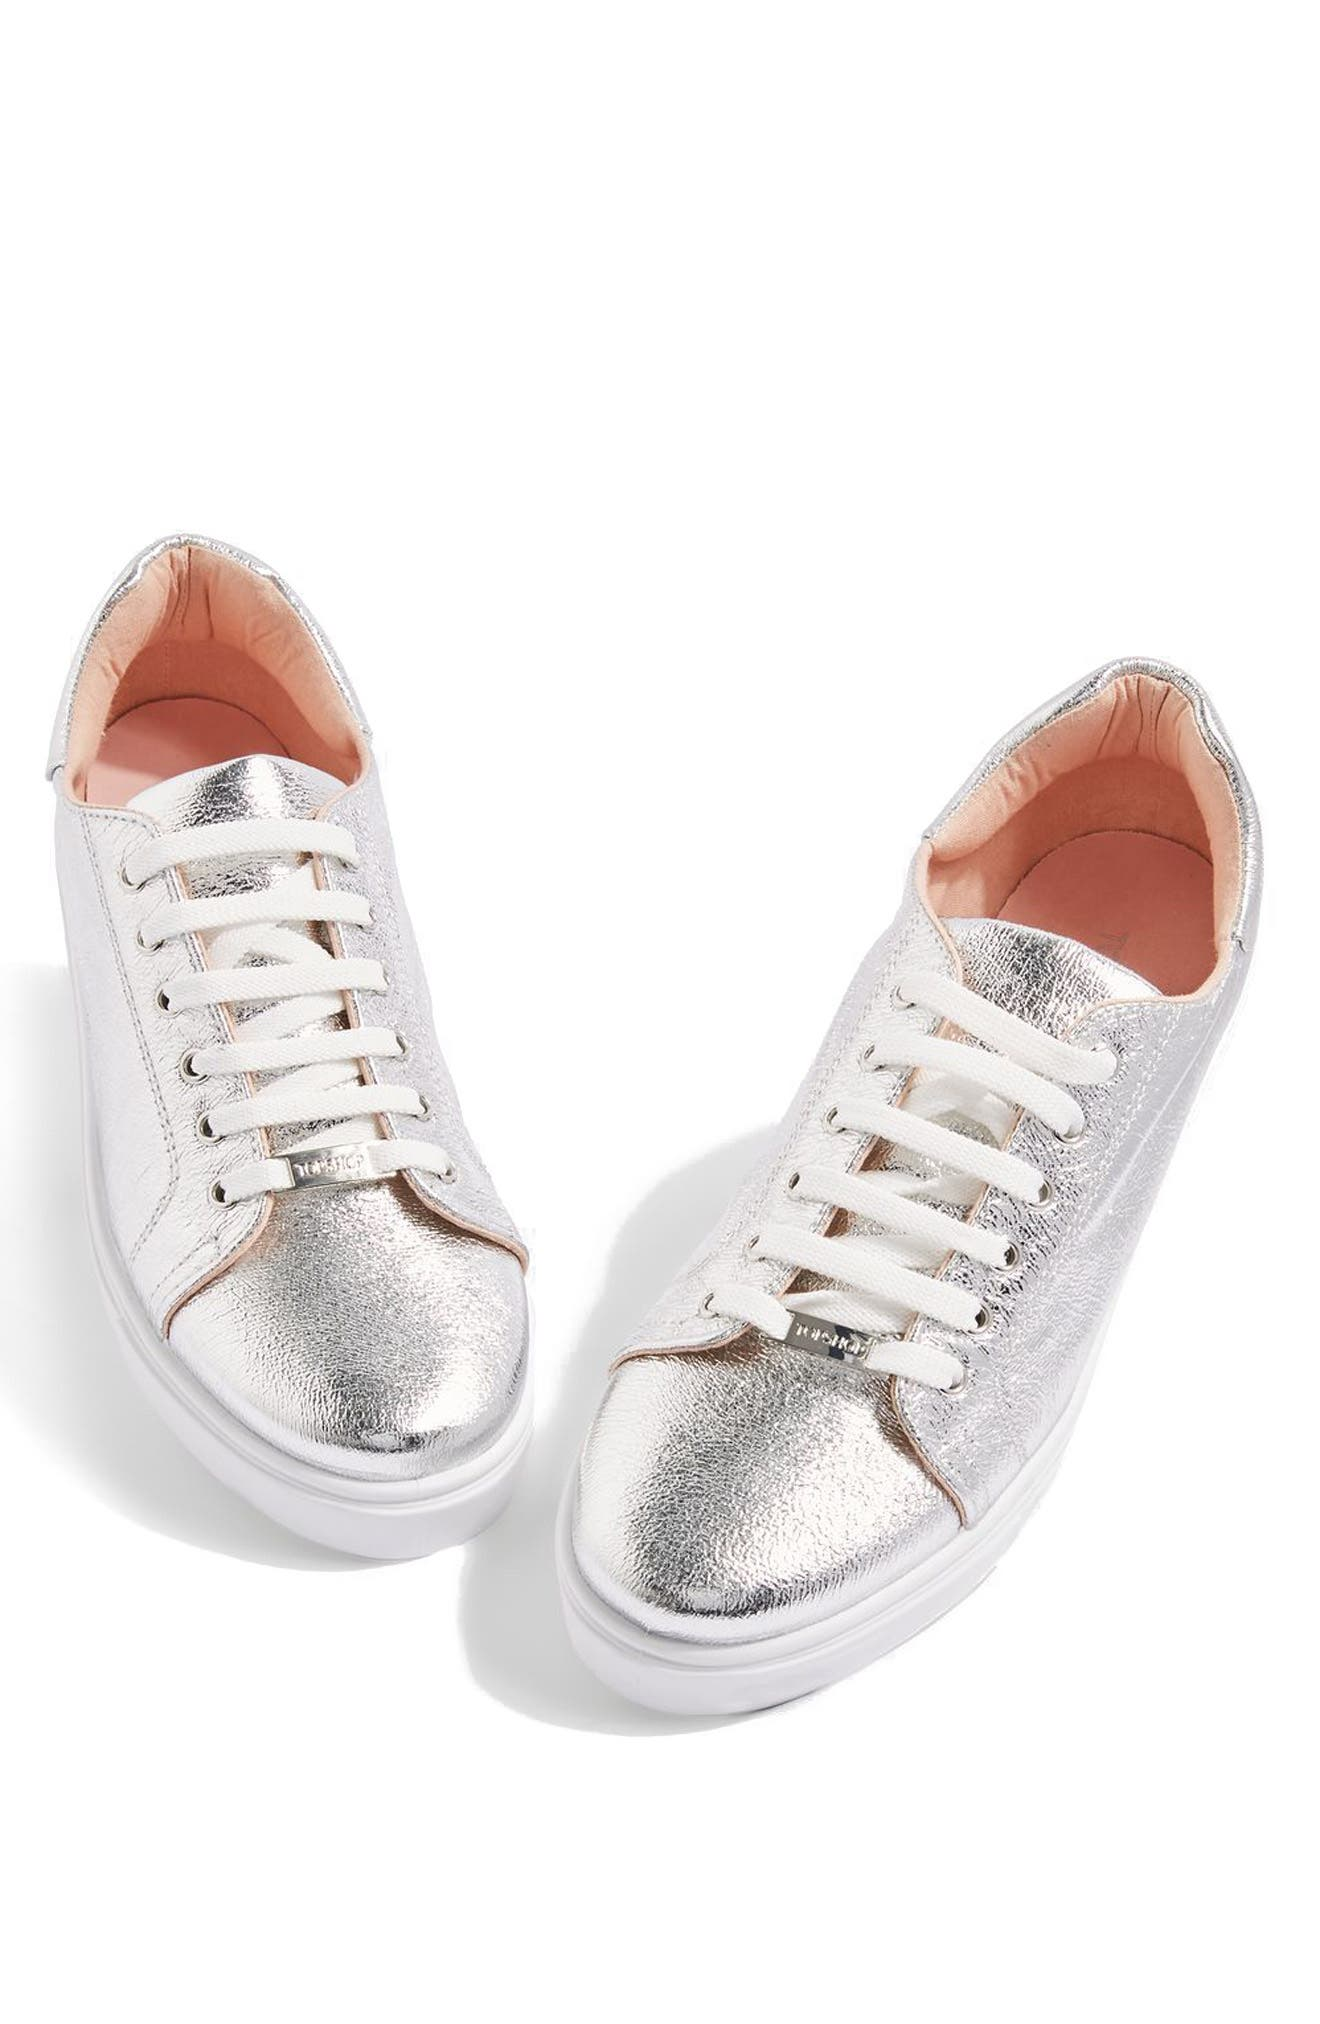 Cosmo Metallic Lace-Up Sneaker,                         Main,                         color, Silver